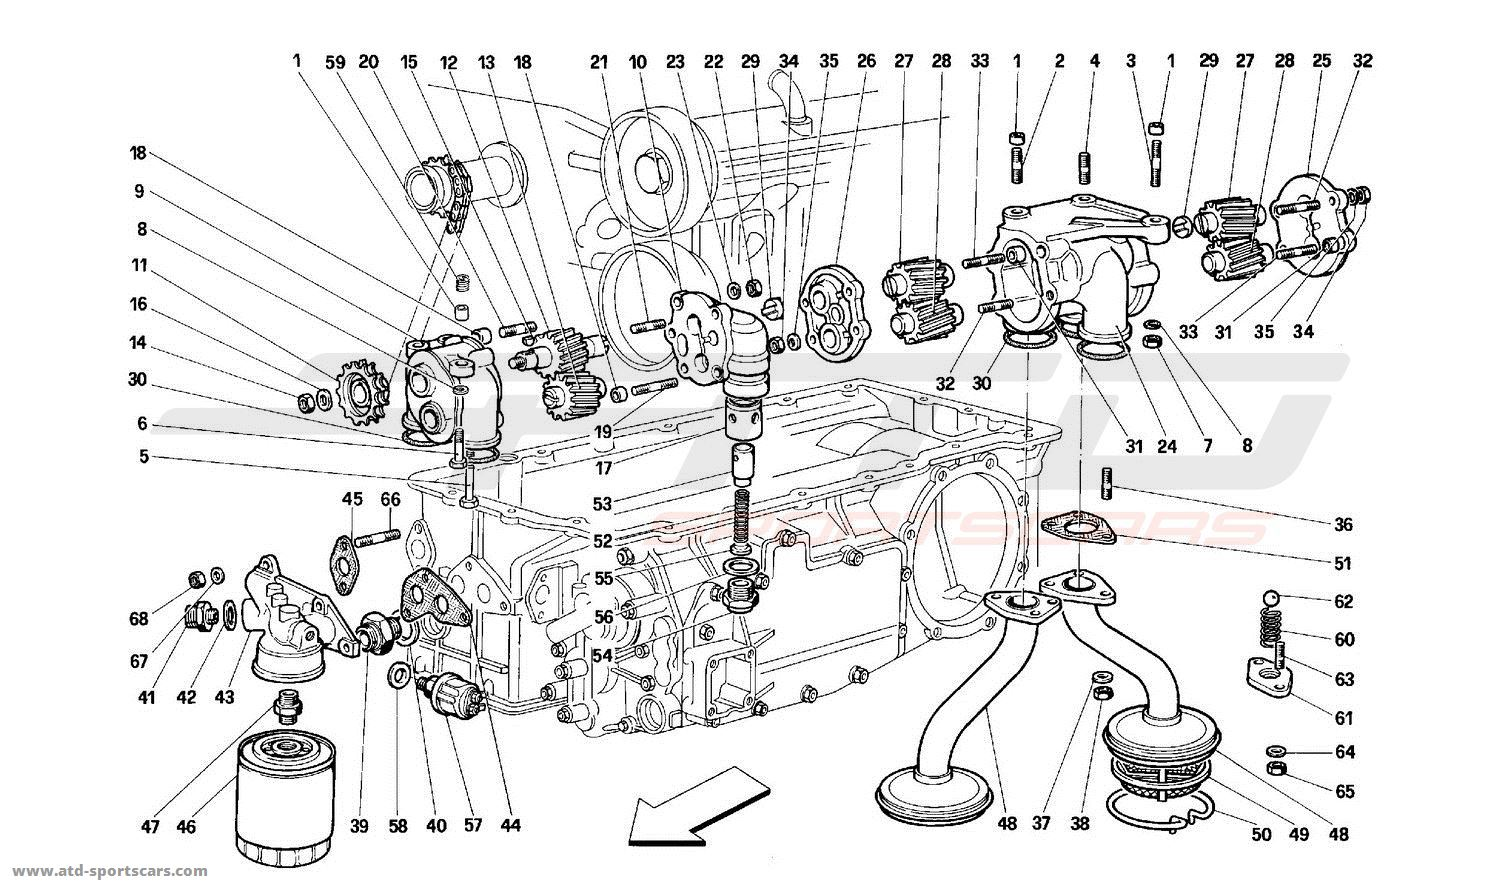 LUBRICATION - PUMPS AND OIL FILTER